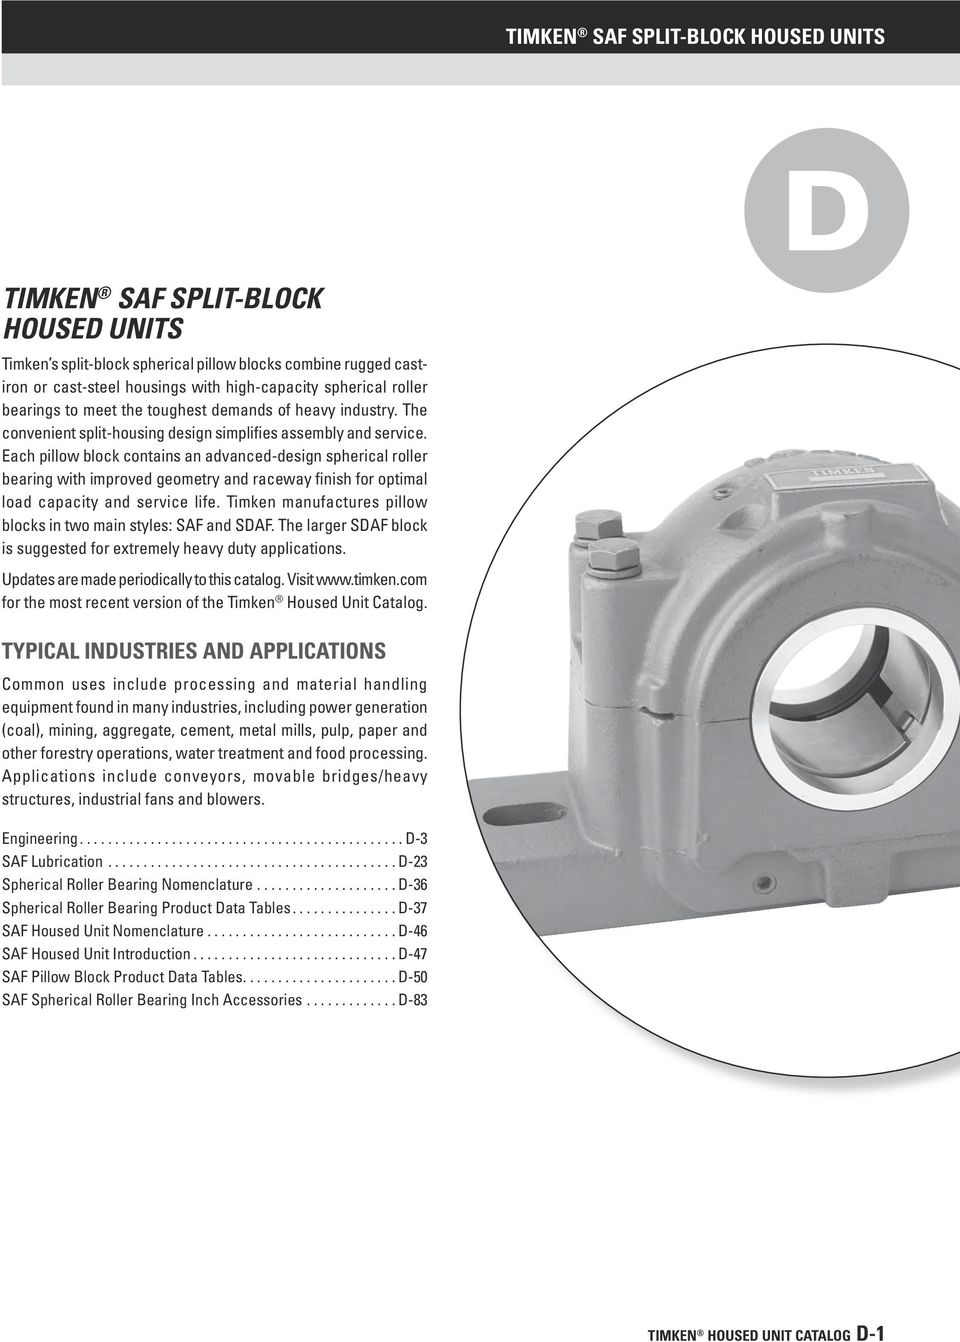 Each pillow block contains an advanced-design spherical roller bearing with improved geometry and raceway finish for optimal load capacity and service life.